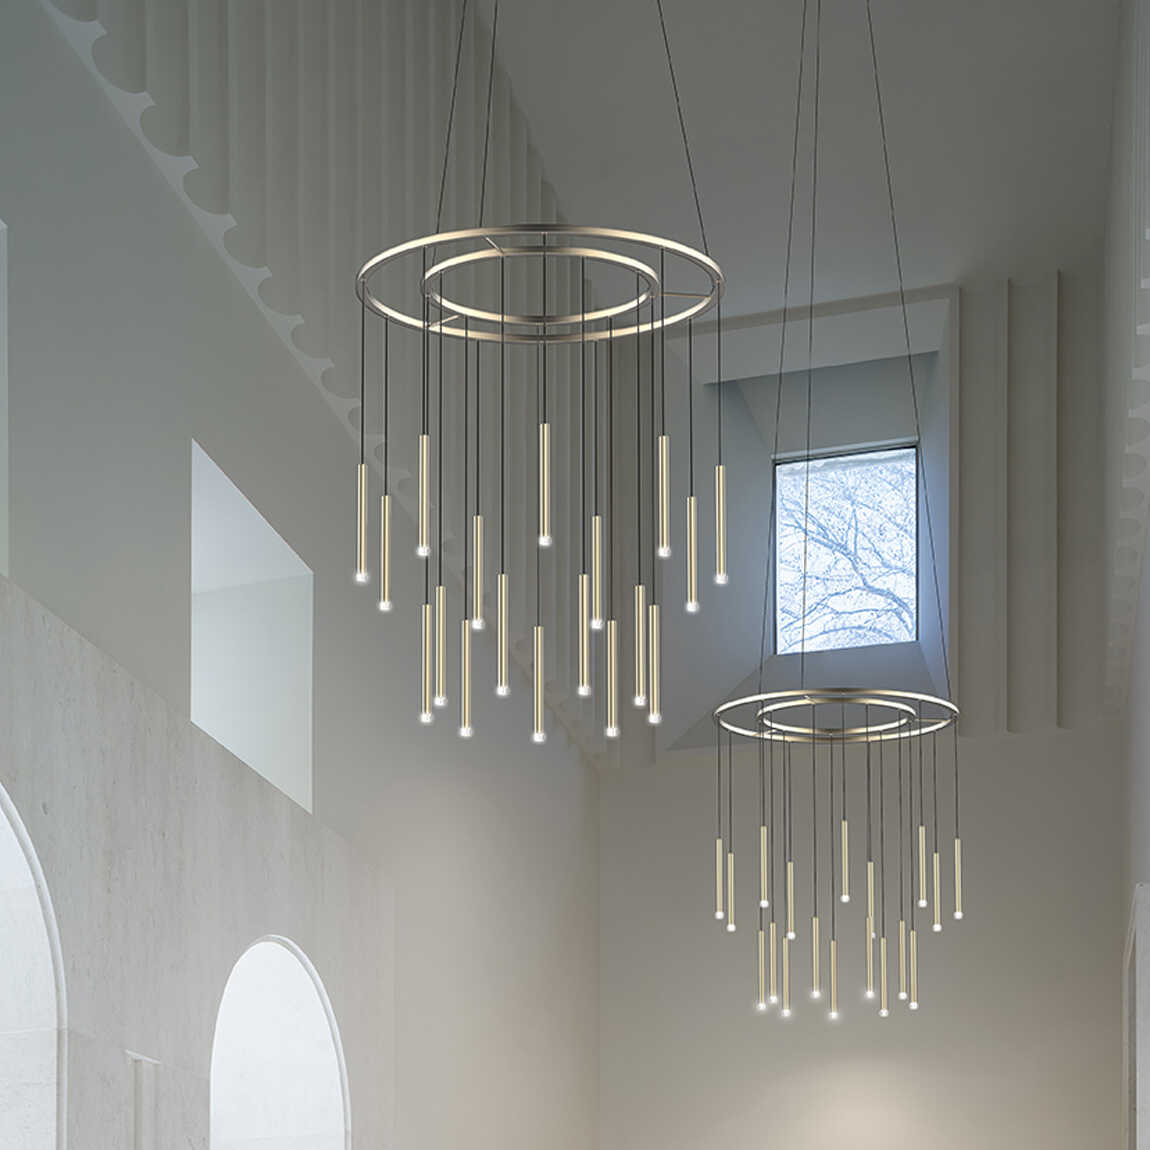 Candle chandelier stunning products at great prices candle chandelier in situ mozeypictures Image collections